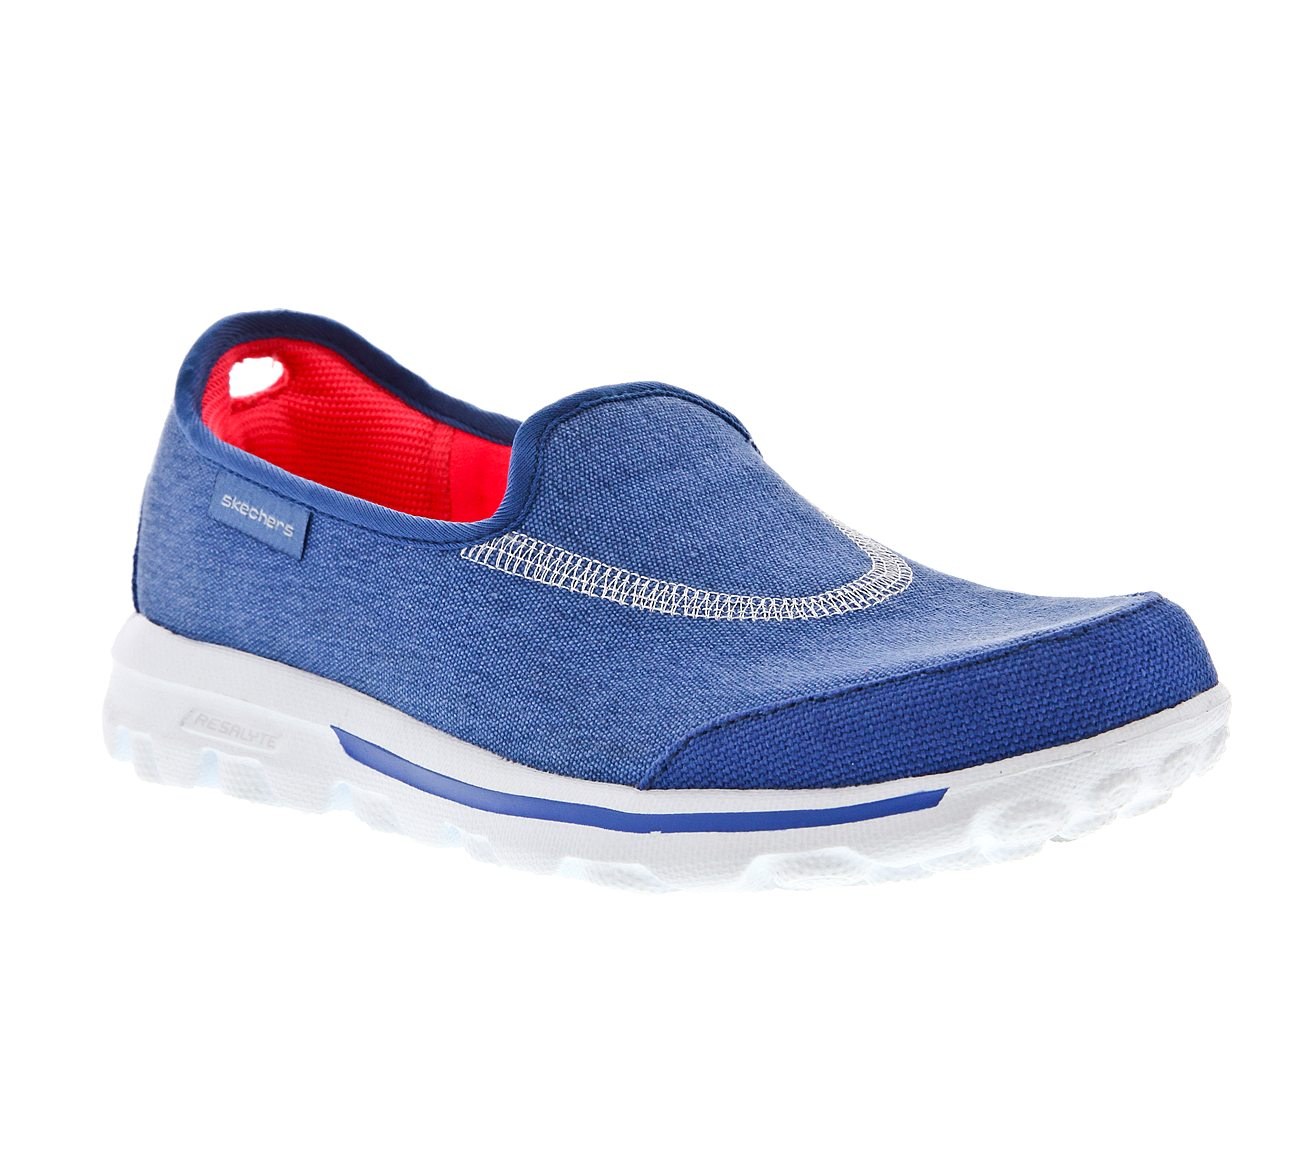 skechers go walk extend